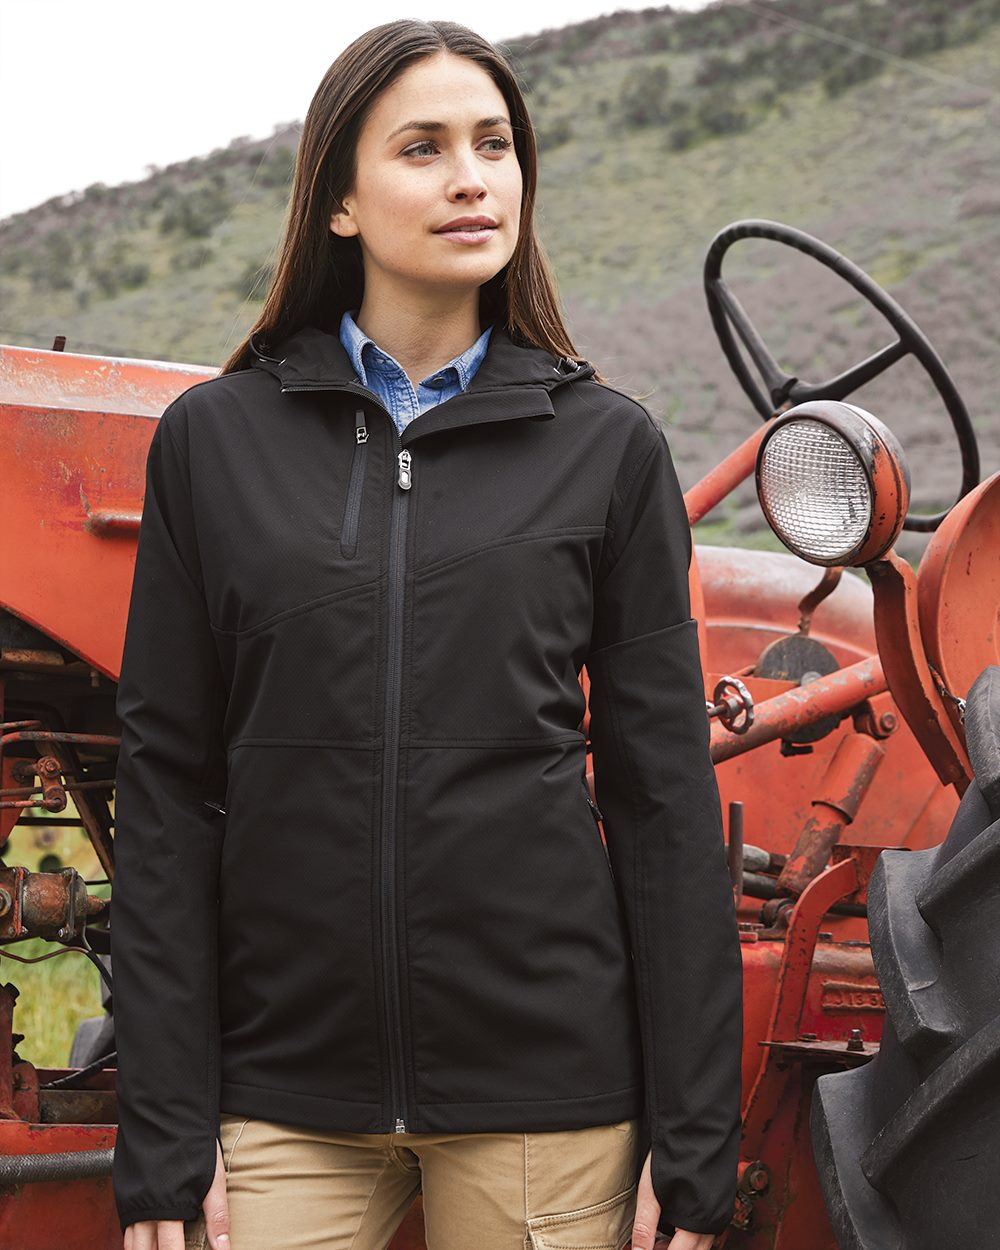 DRI DUCK 9411 - Women's Ascent Hooded Soft Shell Jacket